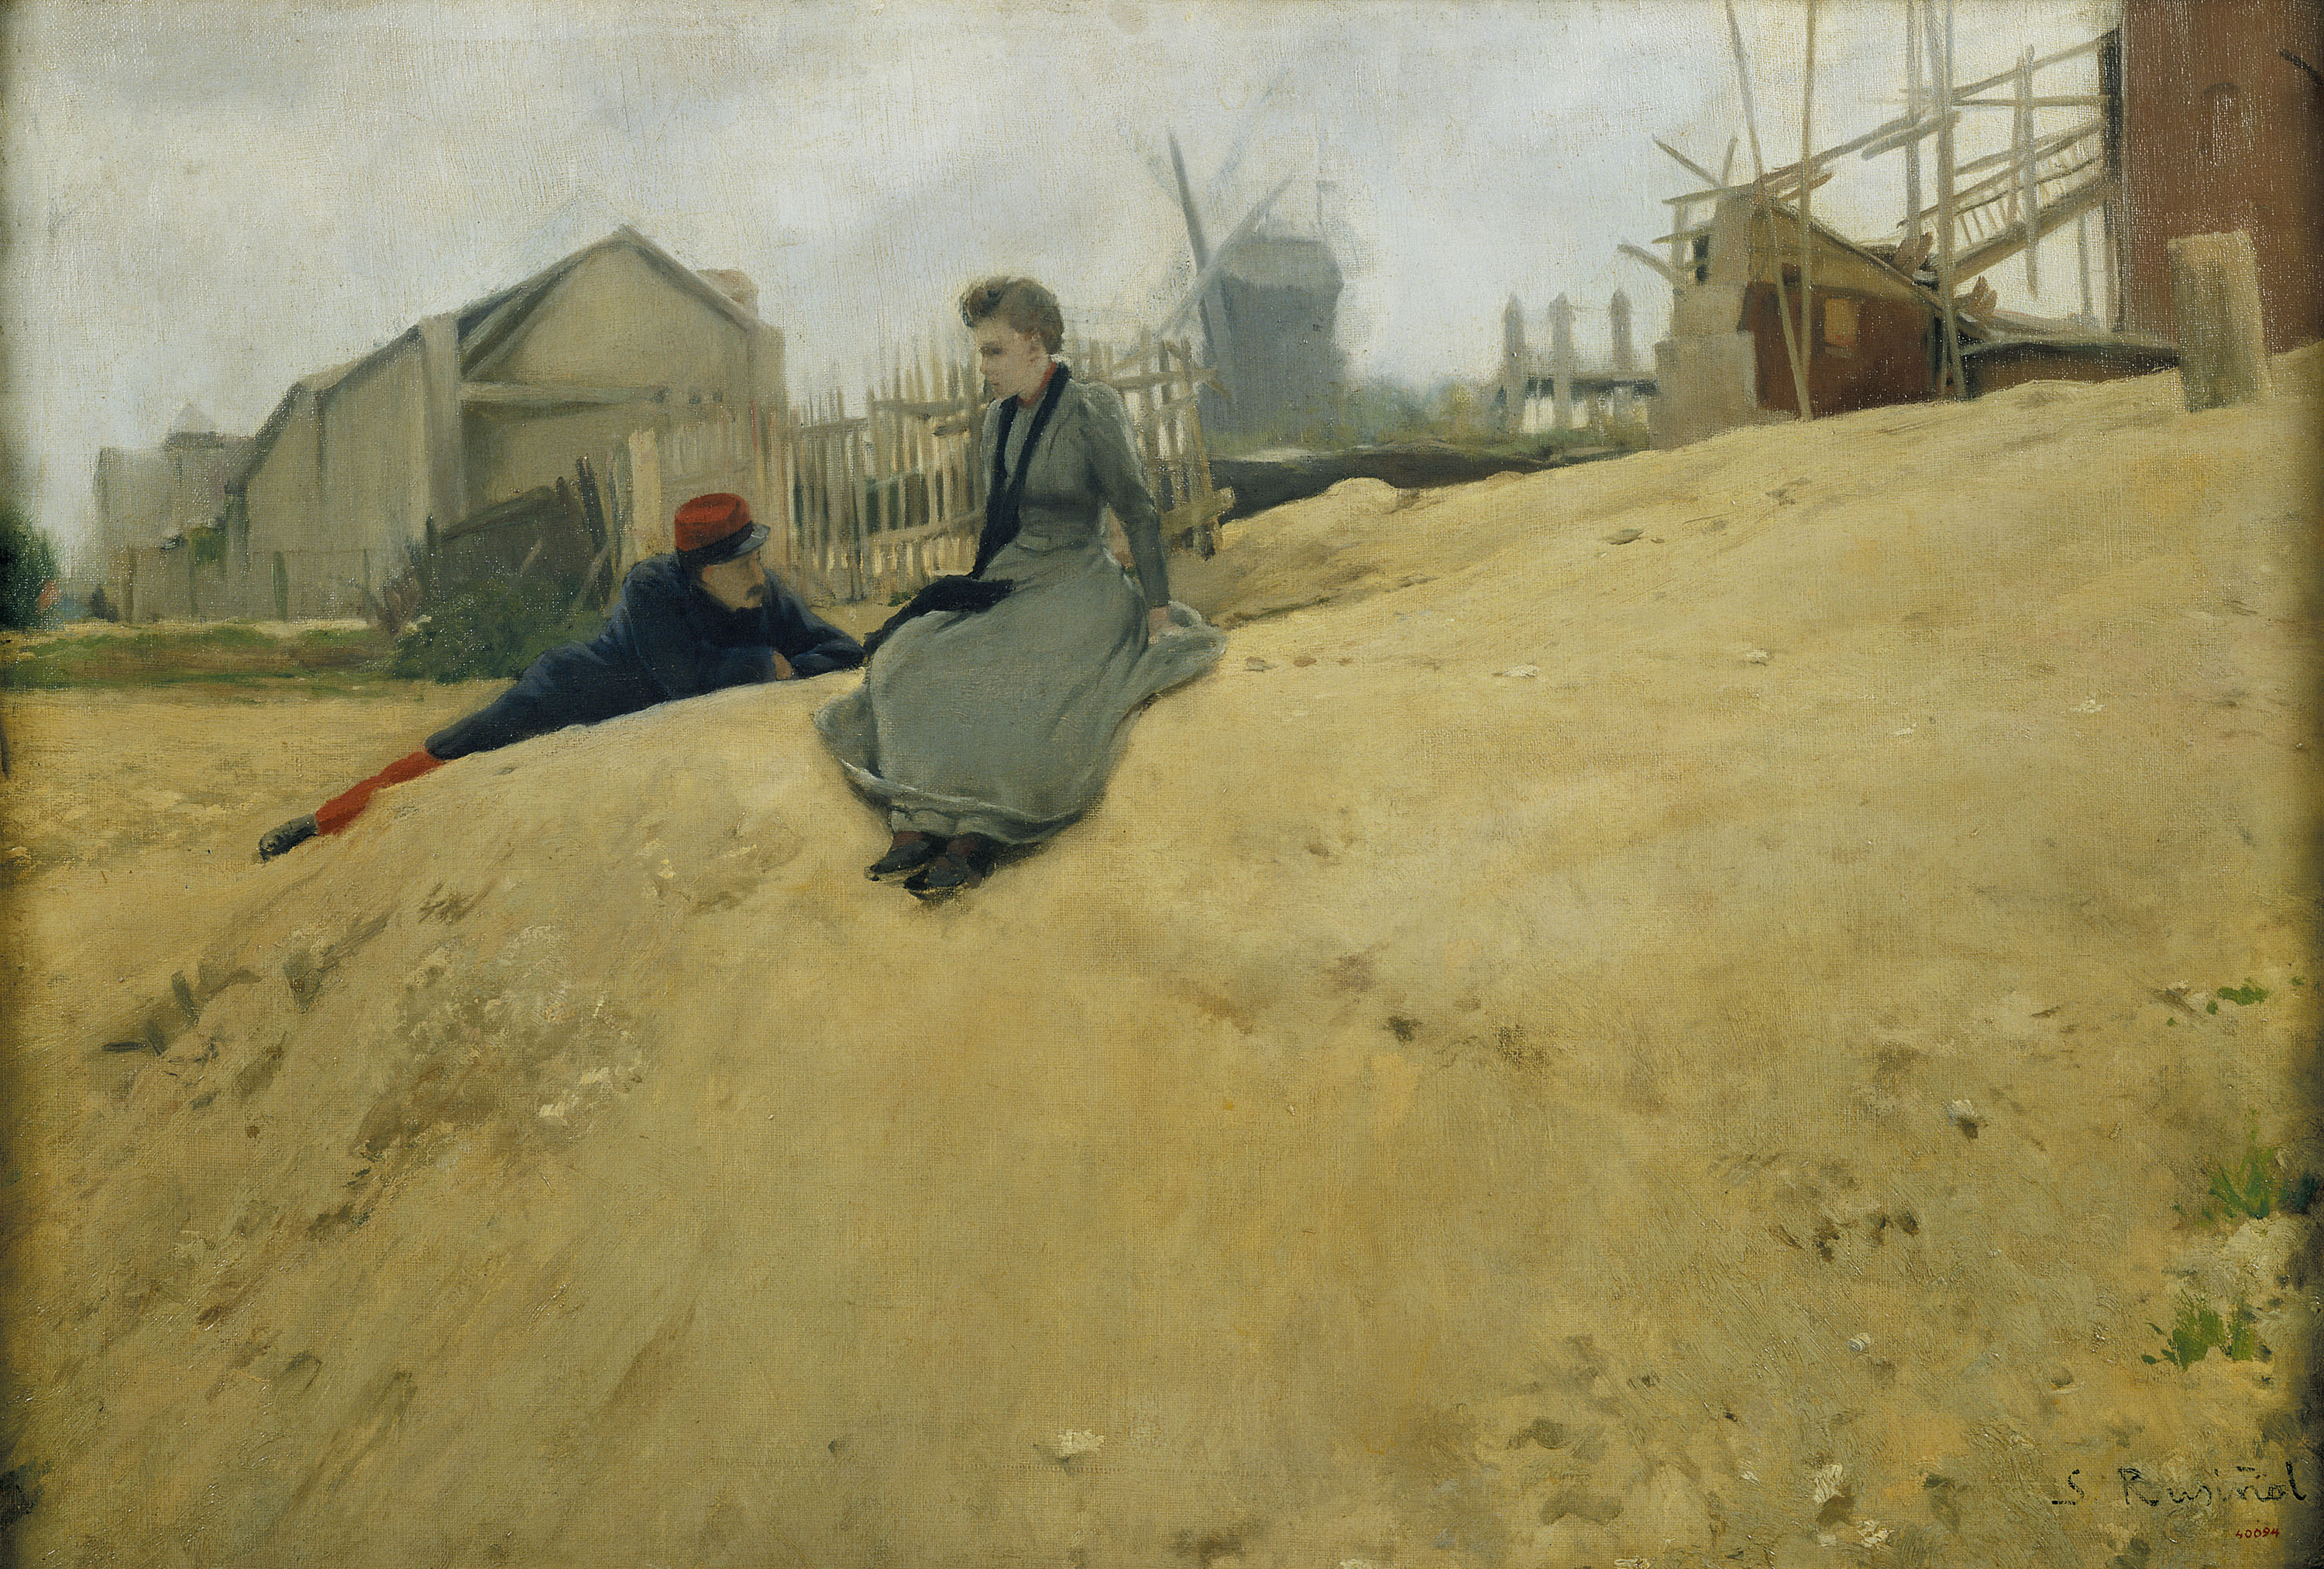 Santiago Rusiñol - On Campaign - Paris, 1891